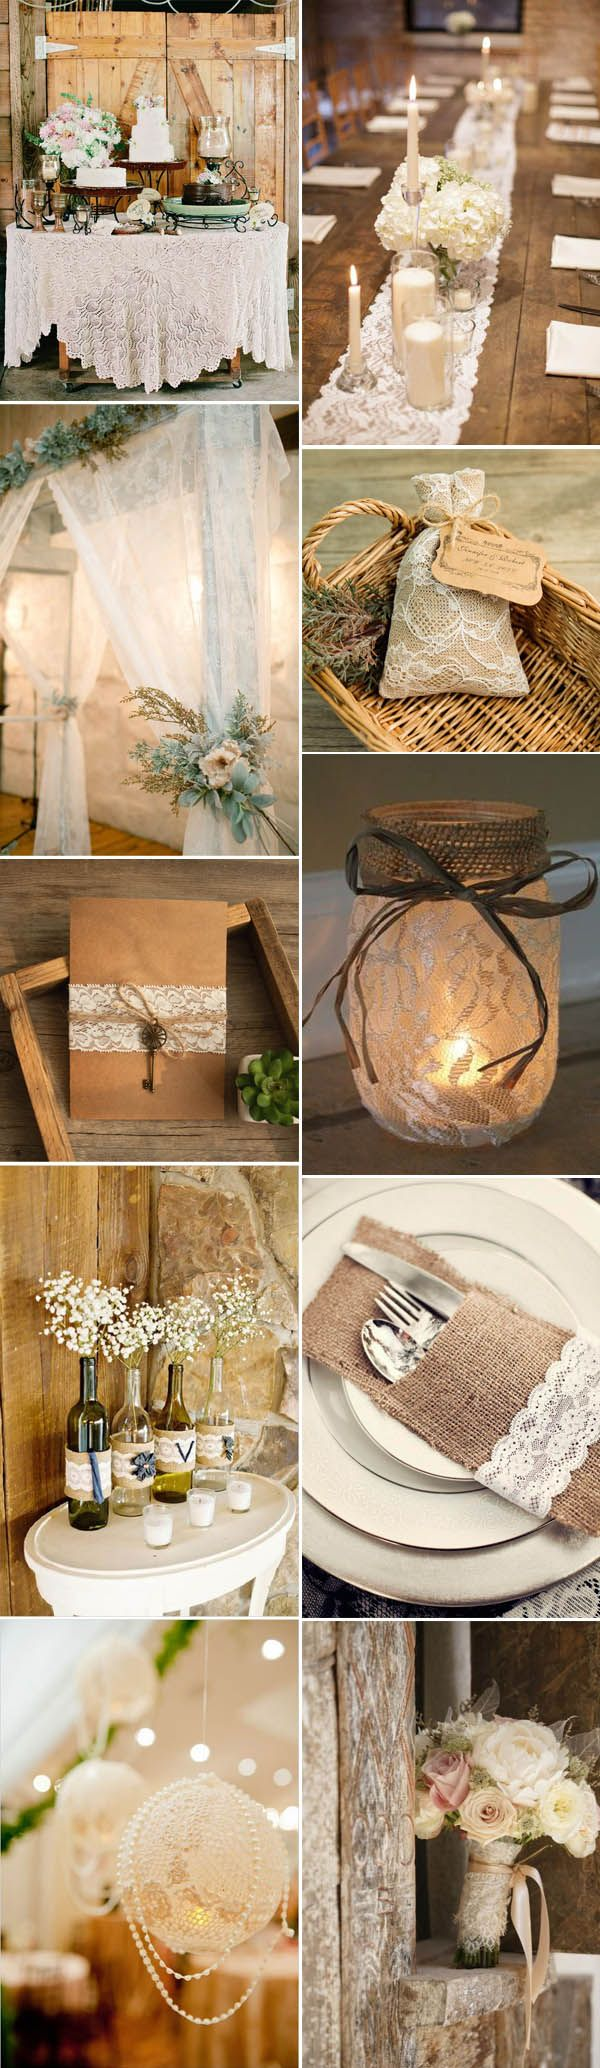 gorgeous lace rustic barn wedding ideas... something simple